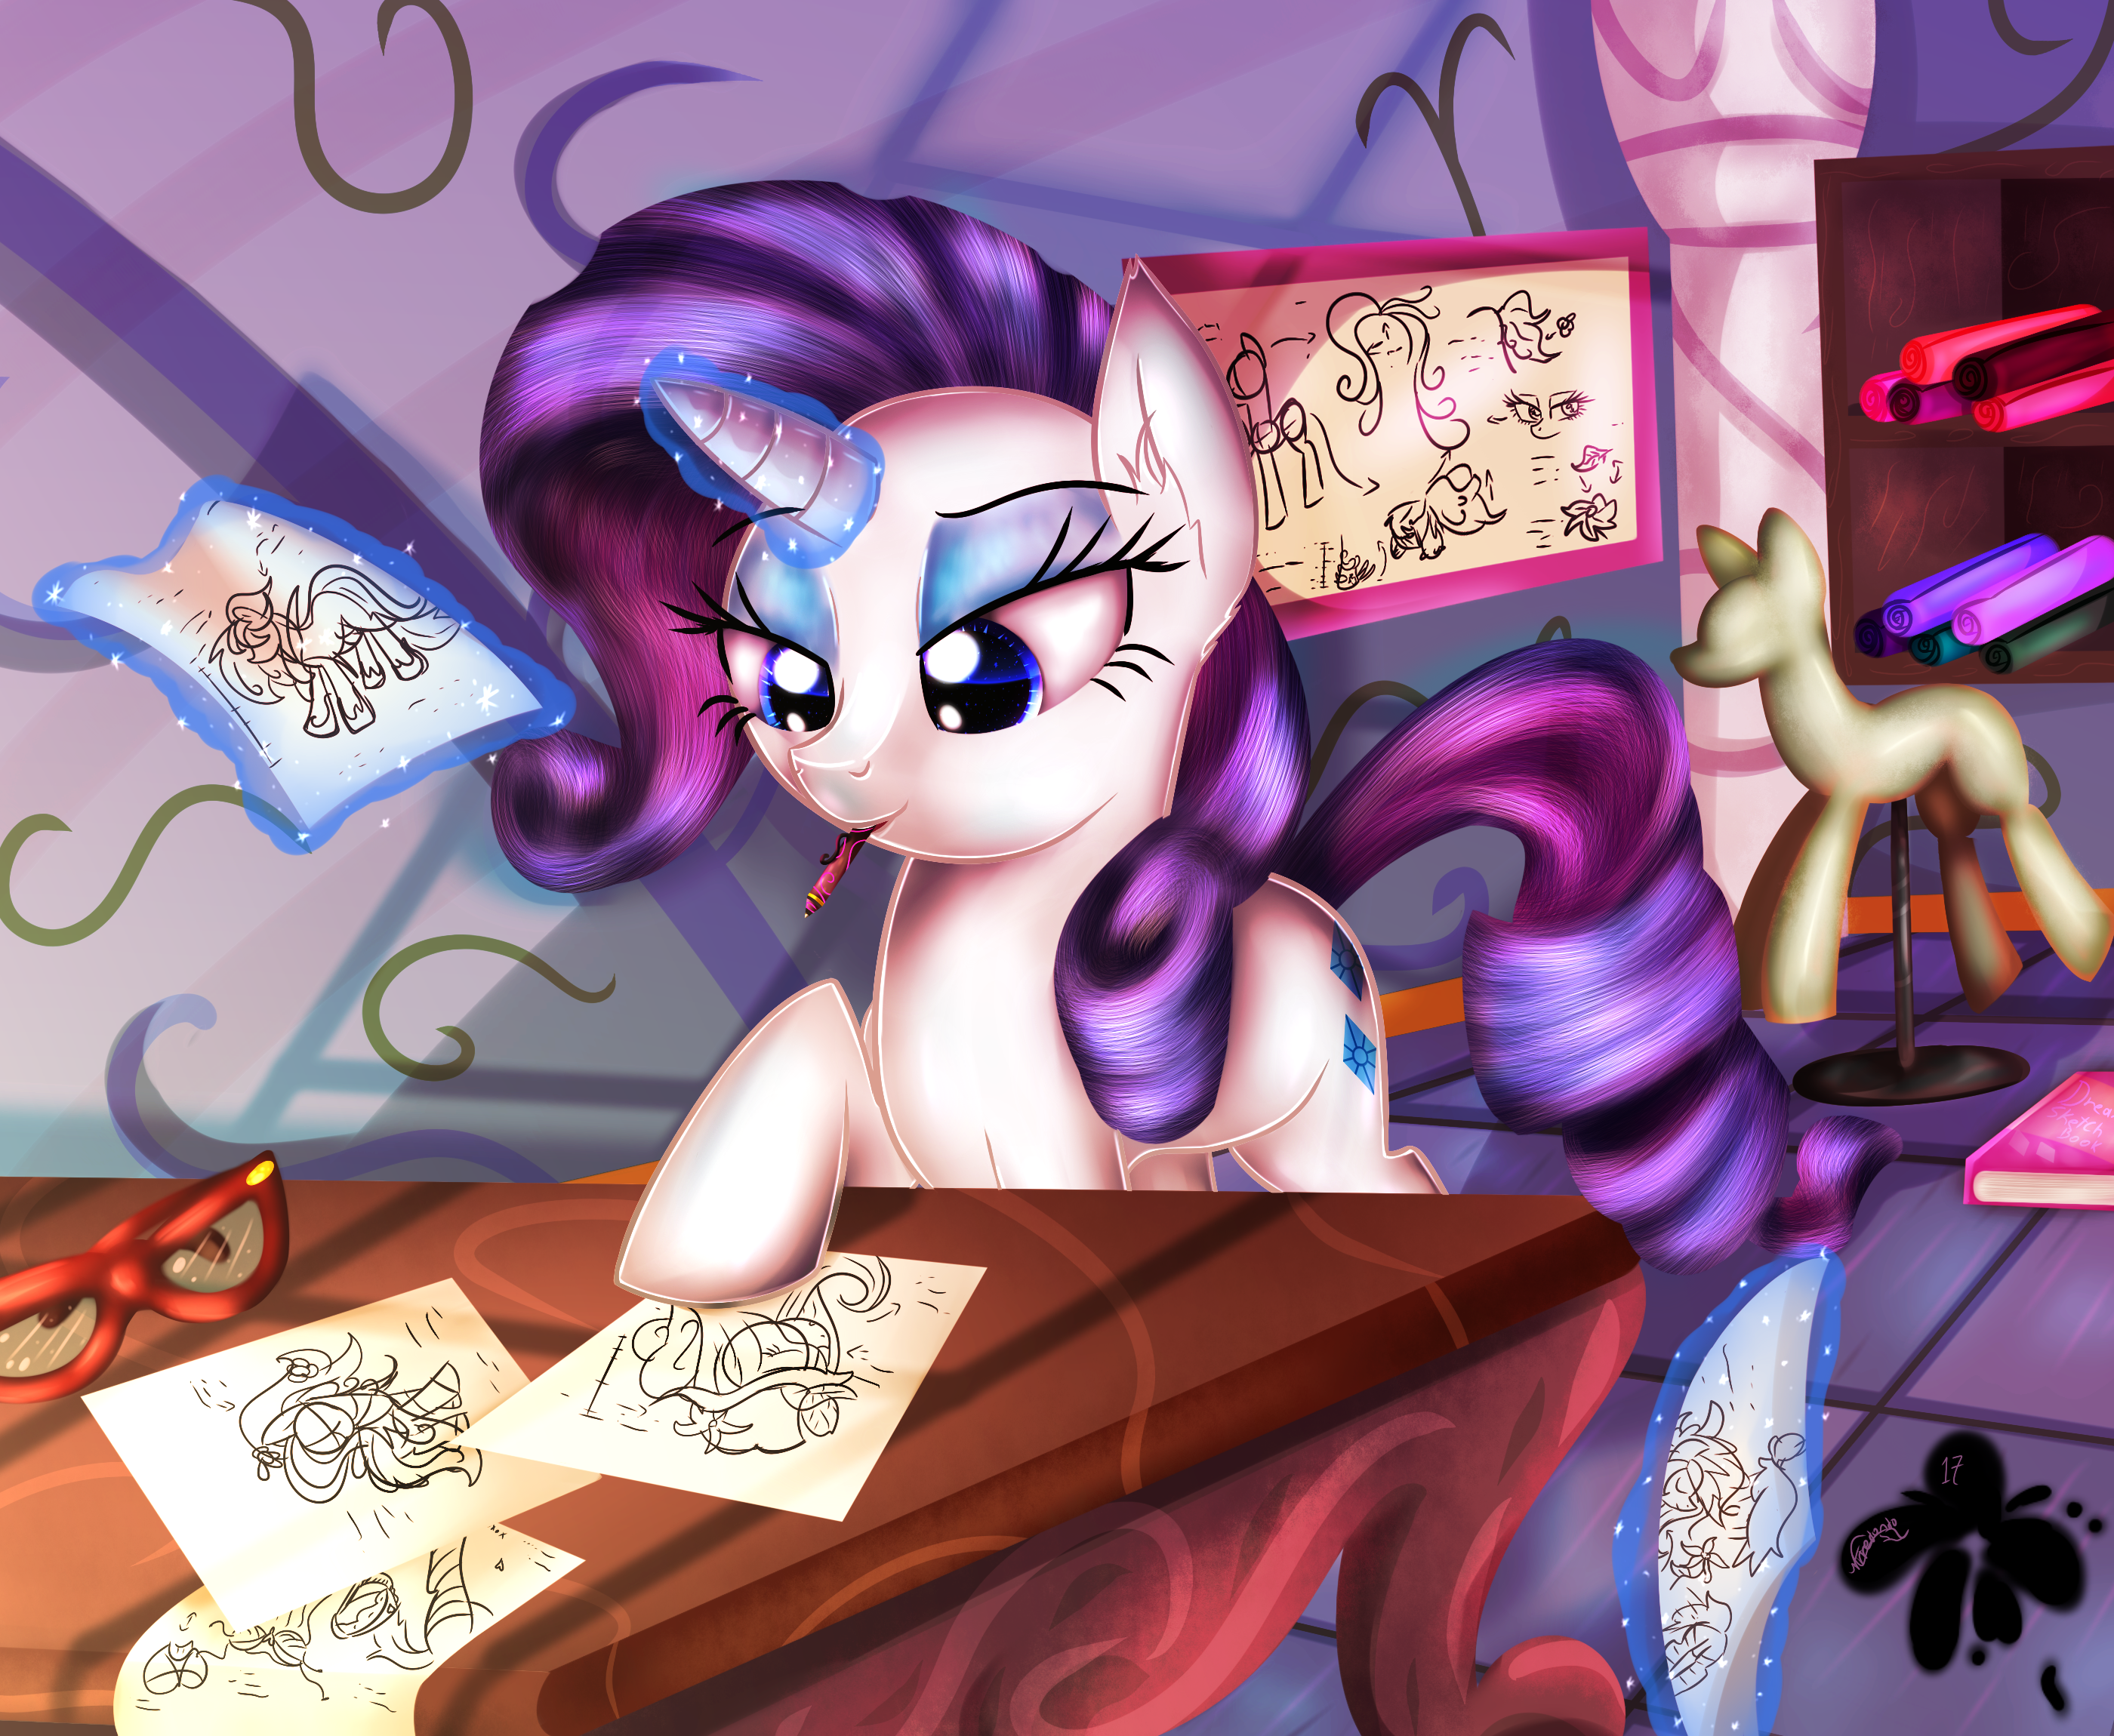 sweet_artist_dream_by_katakiuchi4u-db9lb